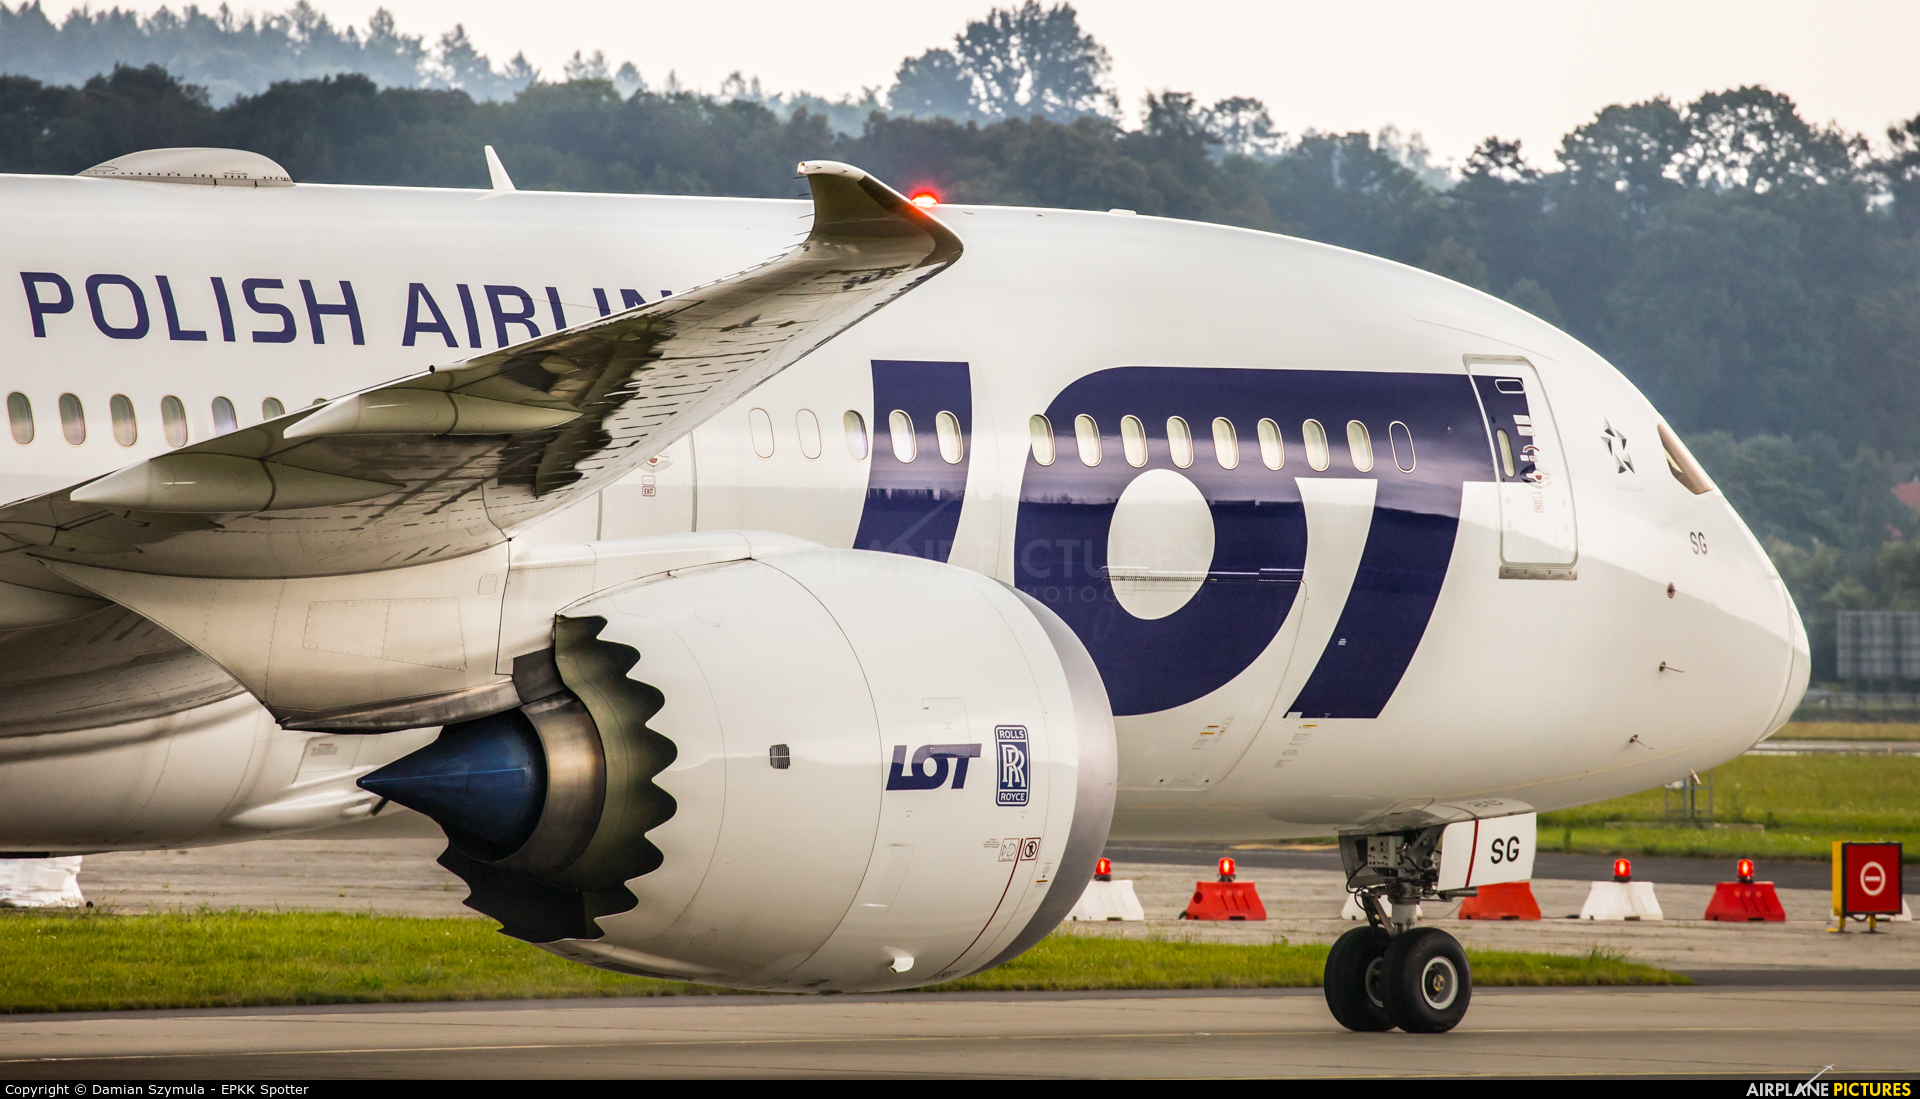 LOT - Polish Airlines SP-LSG aircraft at Kraków - John Paul II Intl